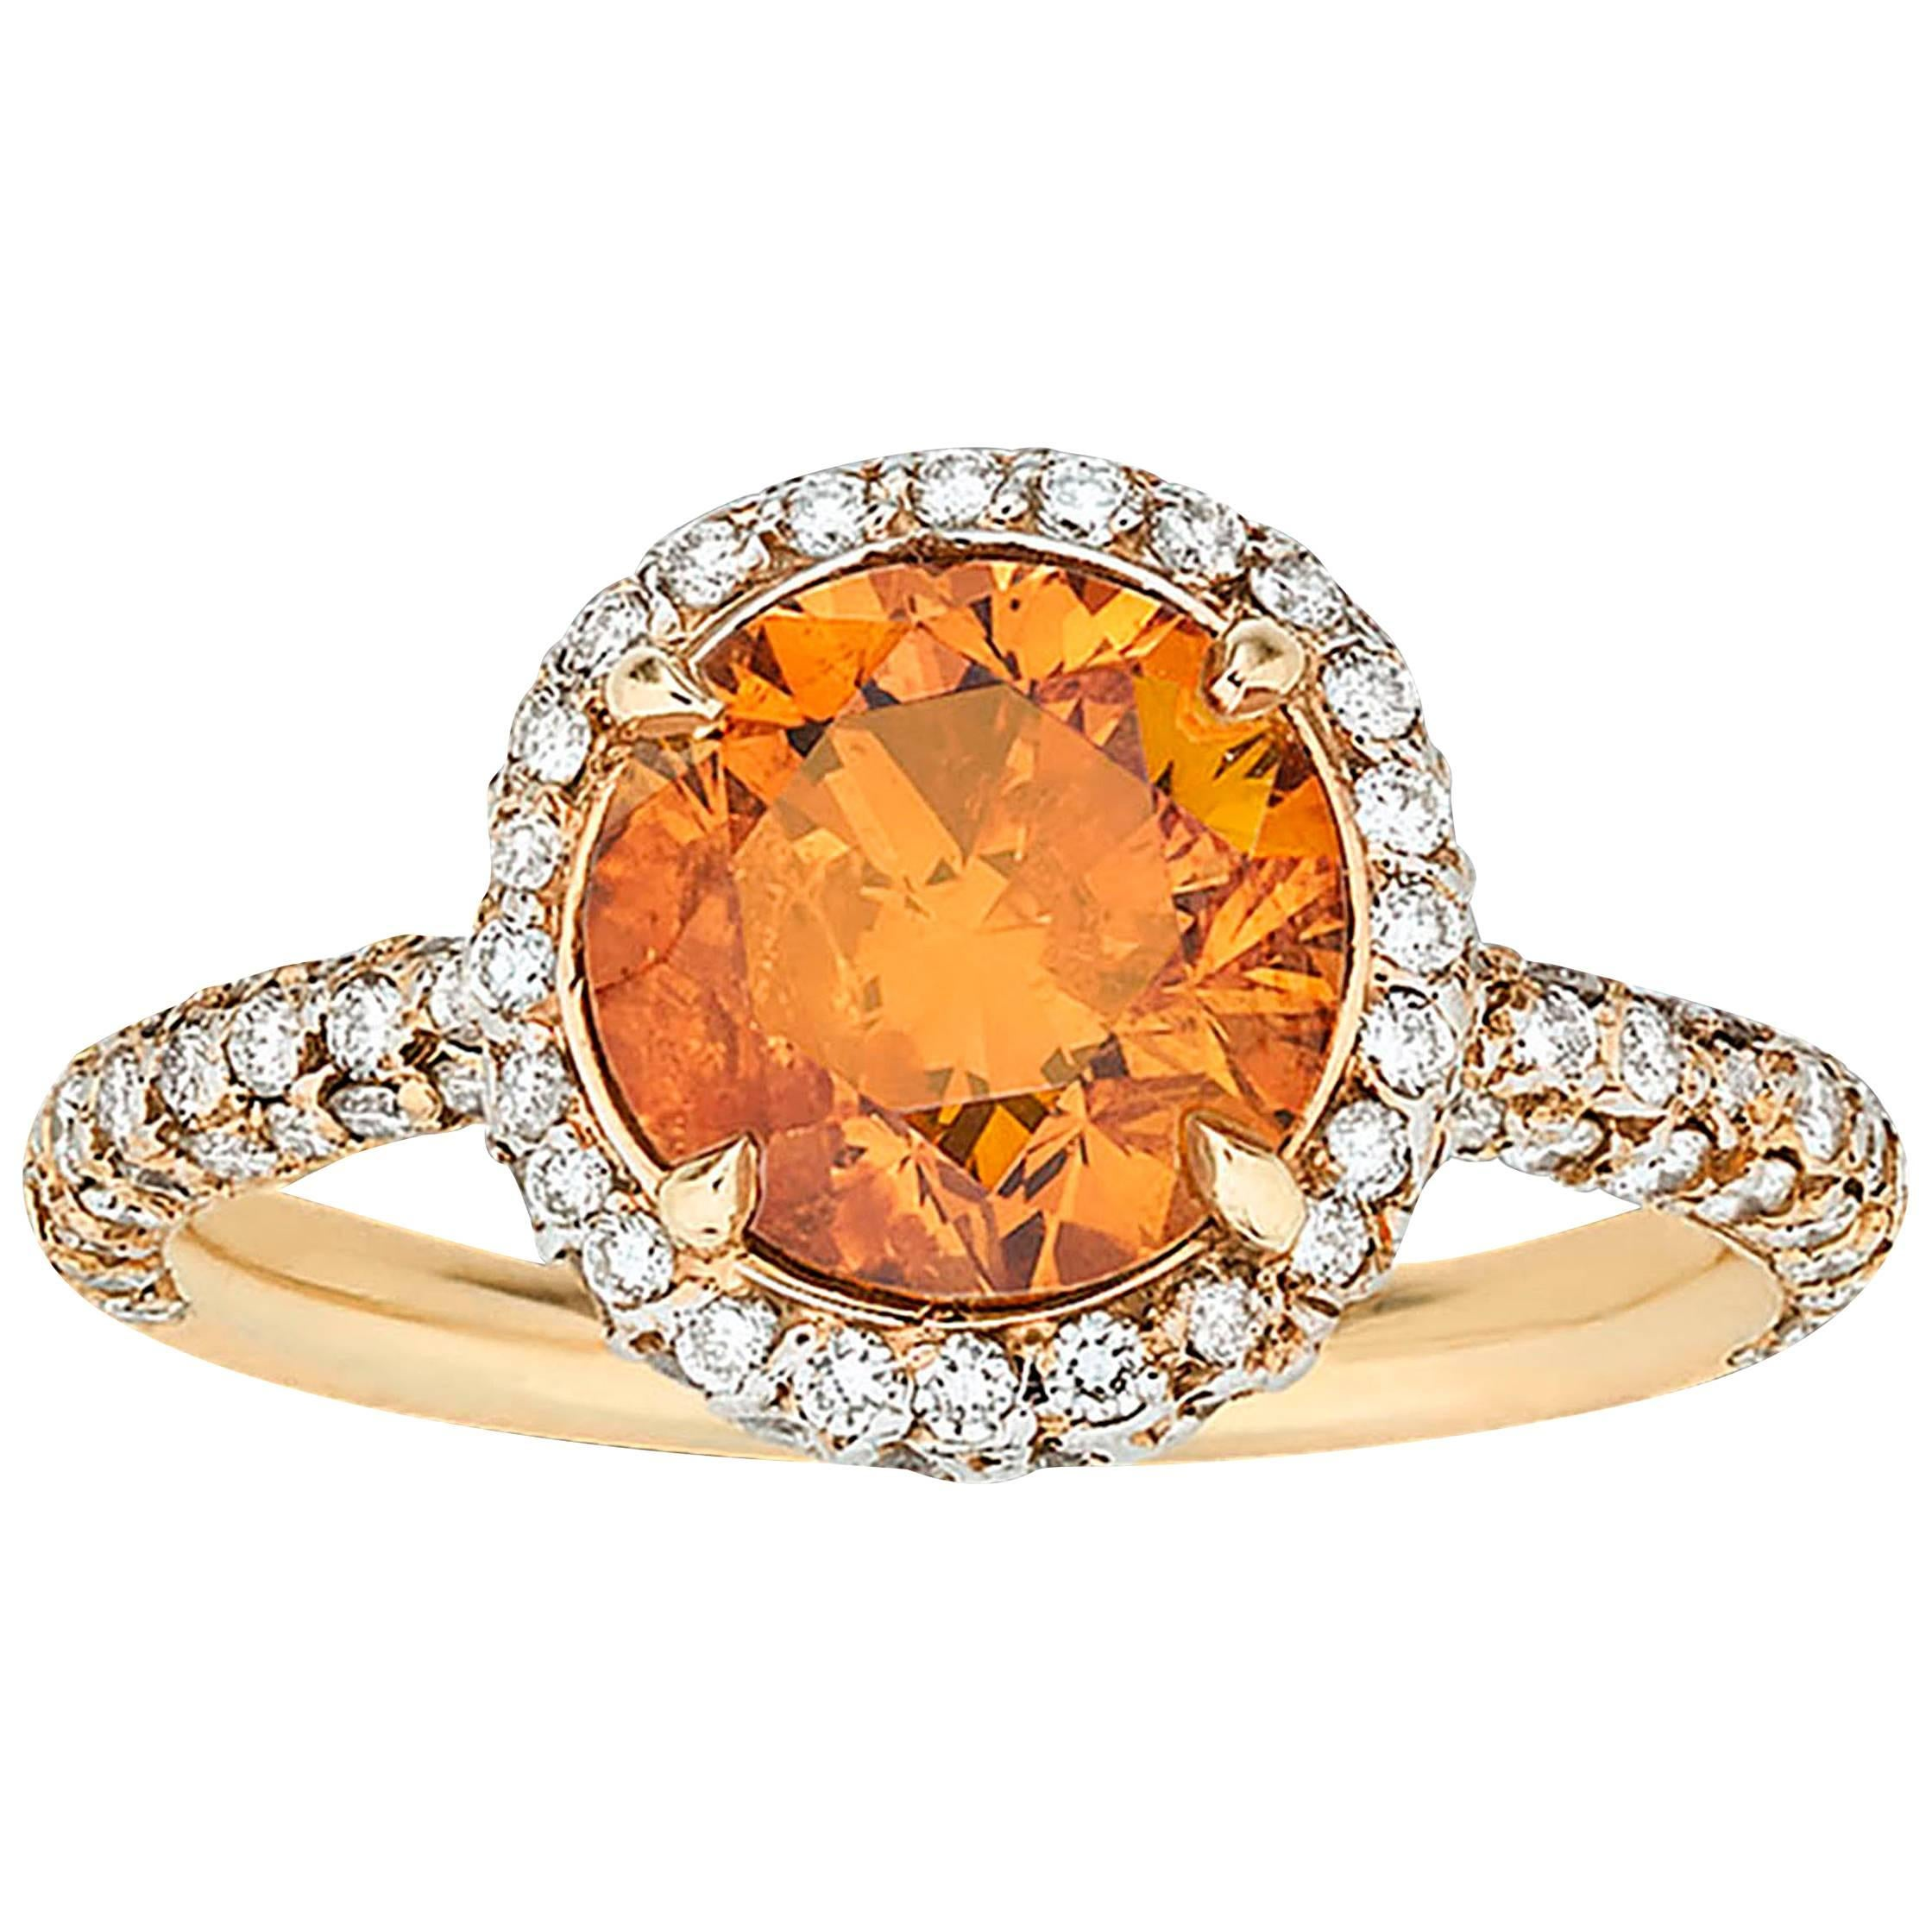 rings engagement orange david diamond spectacular morris trans pink weddings